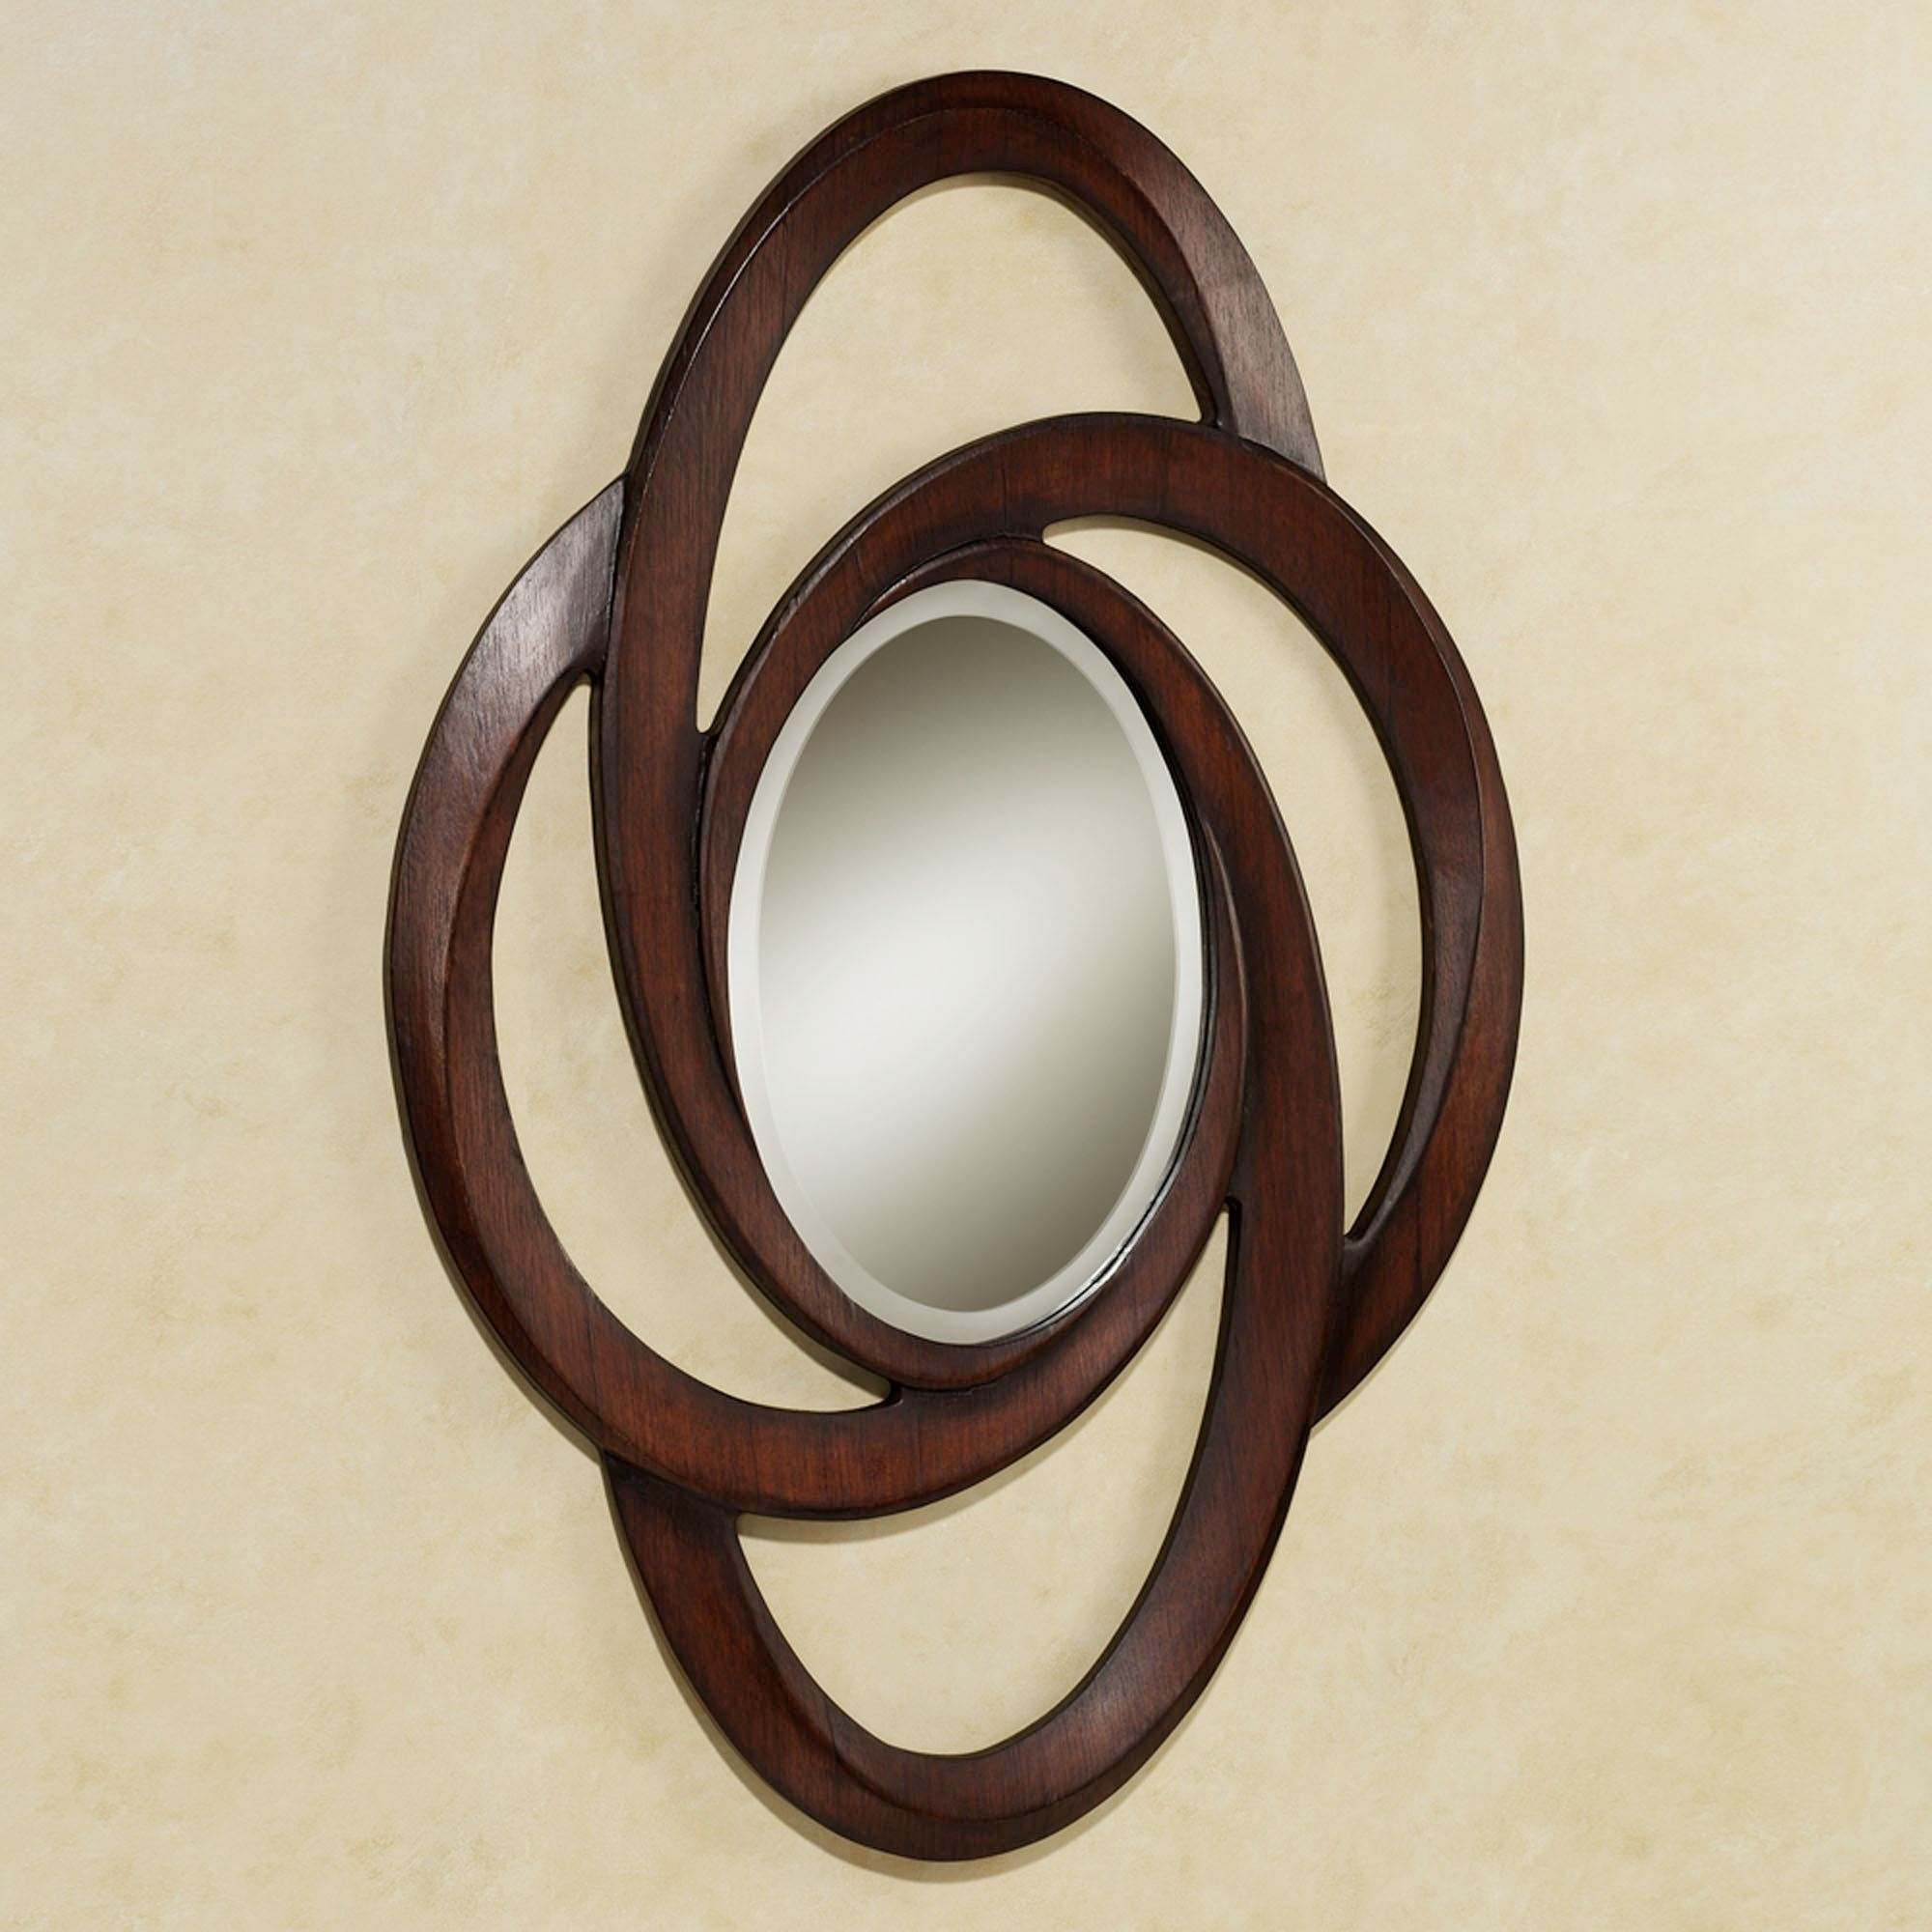 Oval Wall Mirrors Throughout Oval Wall Mirrors (Image 11 of 15)